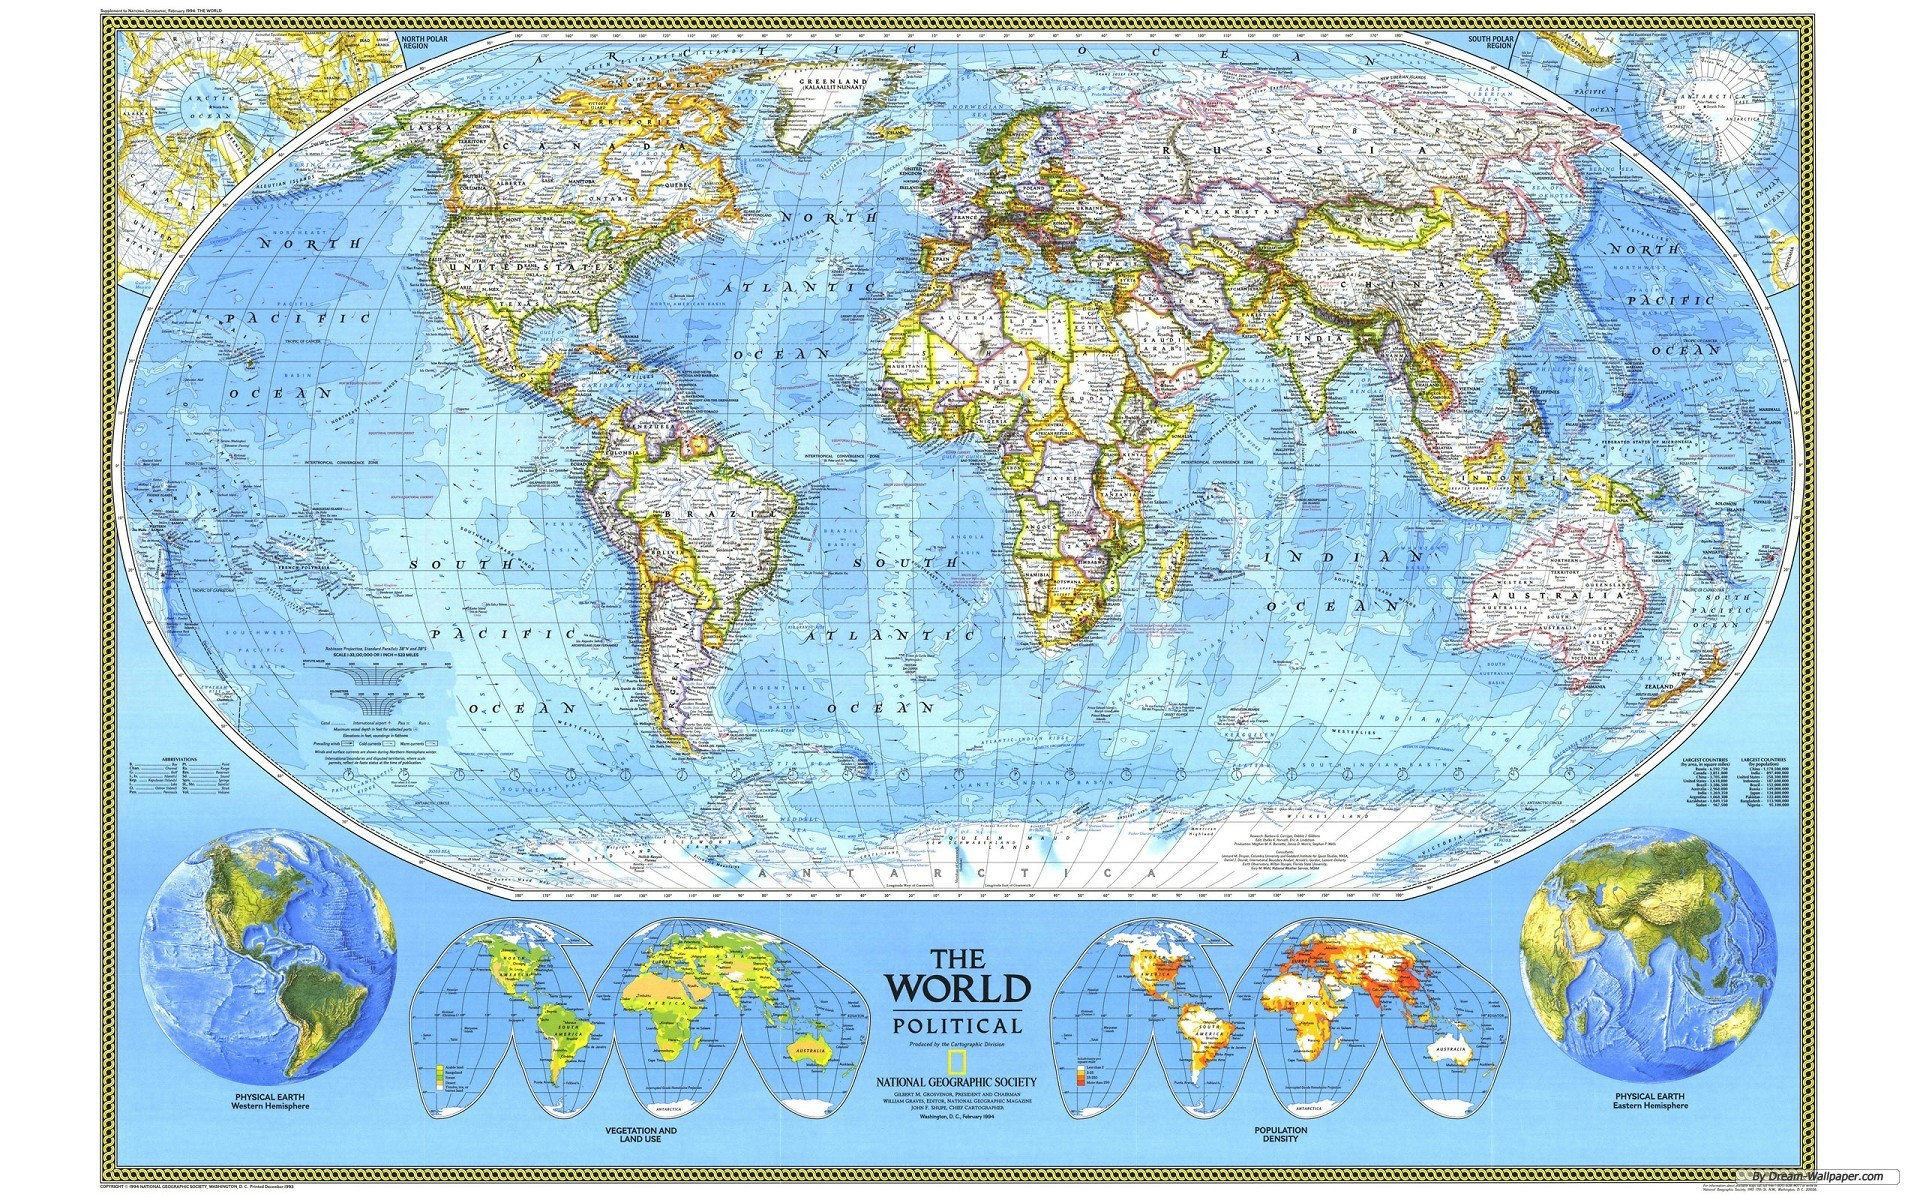 World map screensaver wallpaper 56 images 1920x1200 old world map digital art hd desktop wallpaper earth wallpaper map wallpaper digital art no download gumiabroncs Choice Image